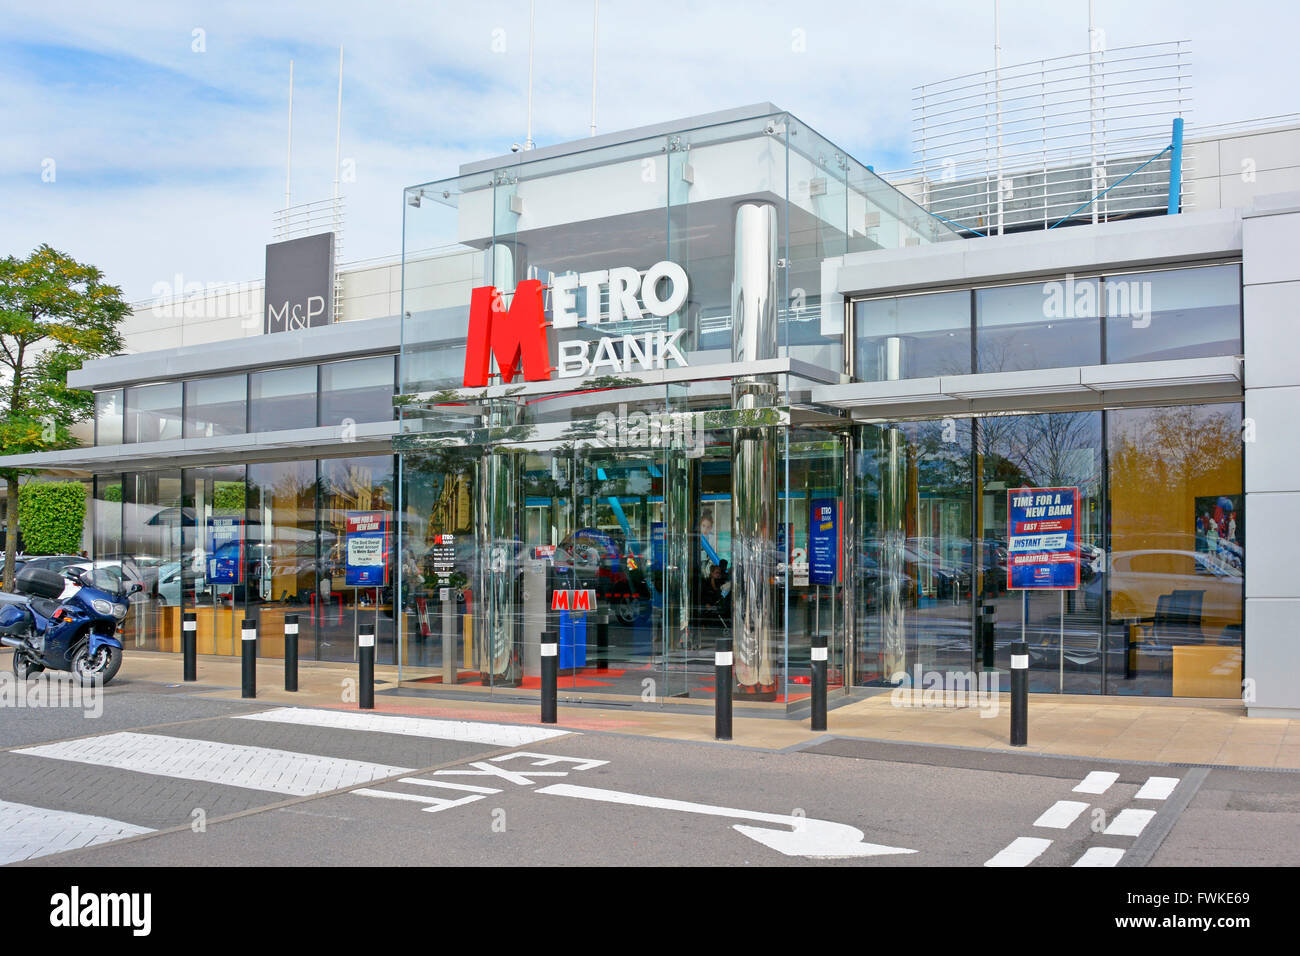 Metro bank branch premises & sign logo in town centre retail park development with large adjacent car park in - Stock Image